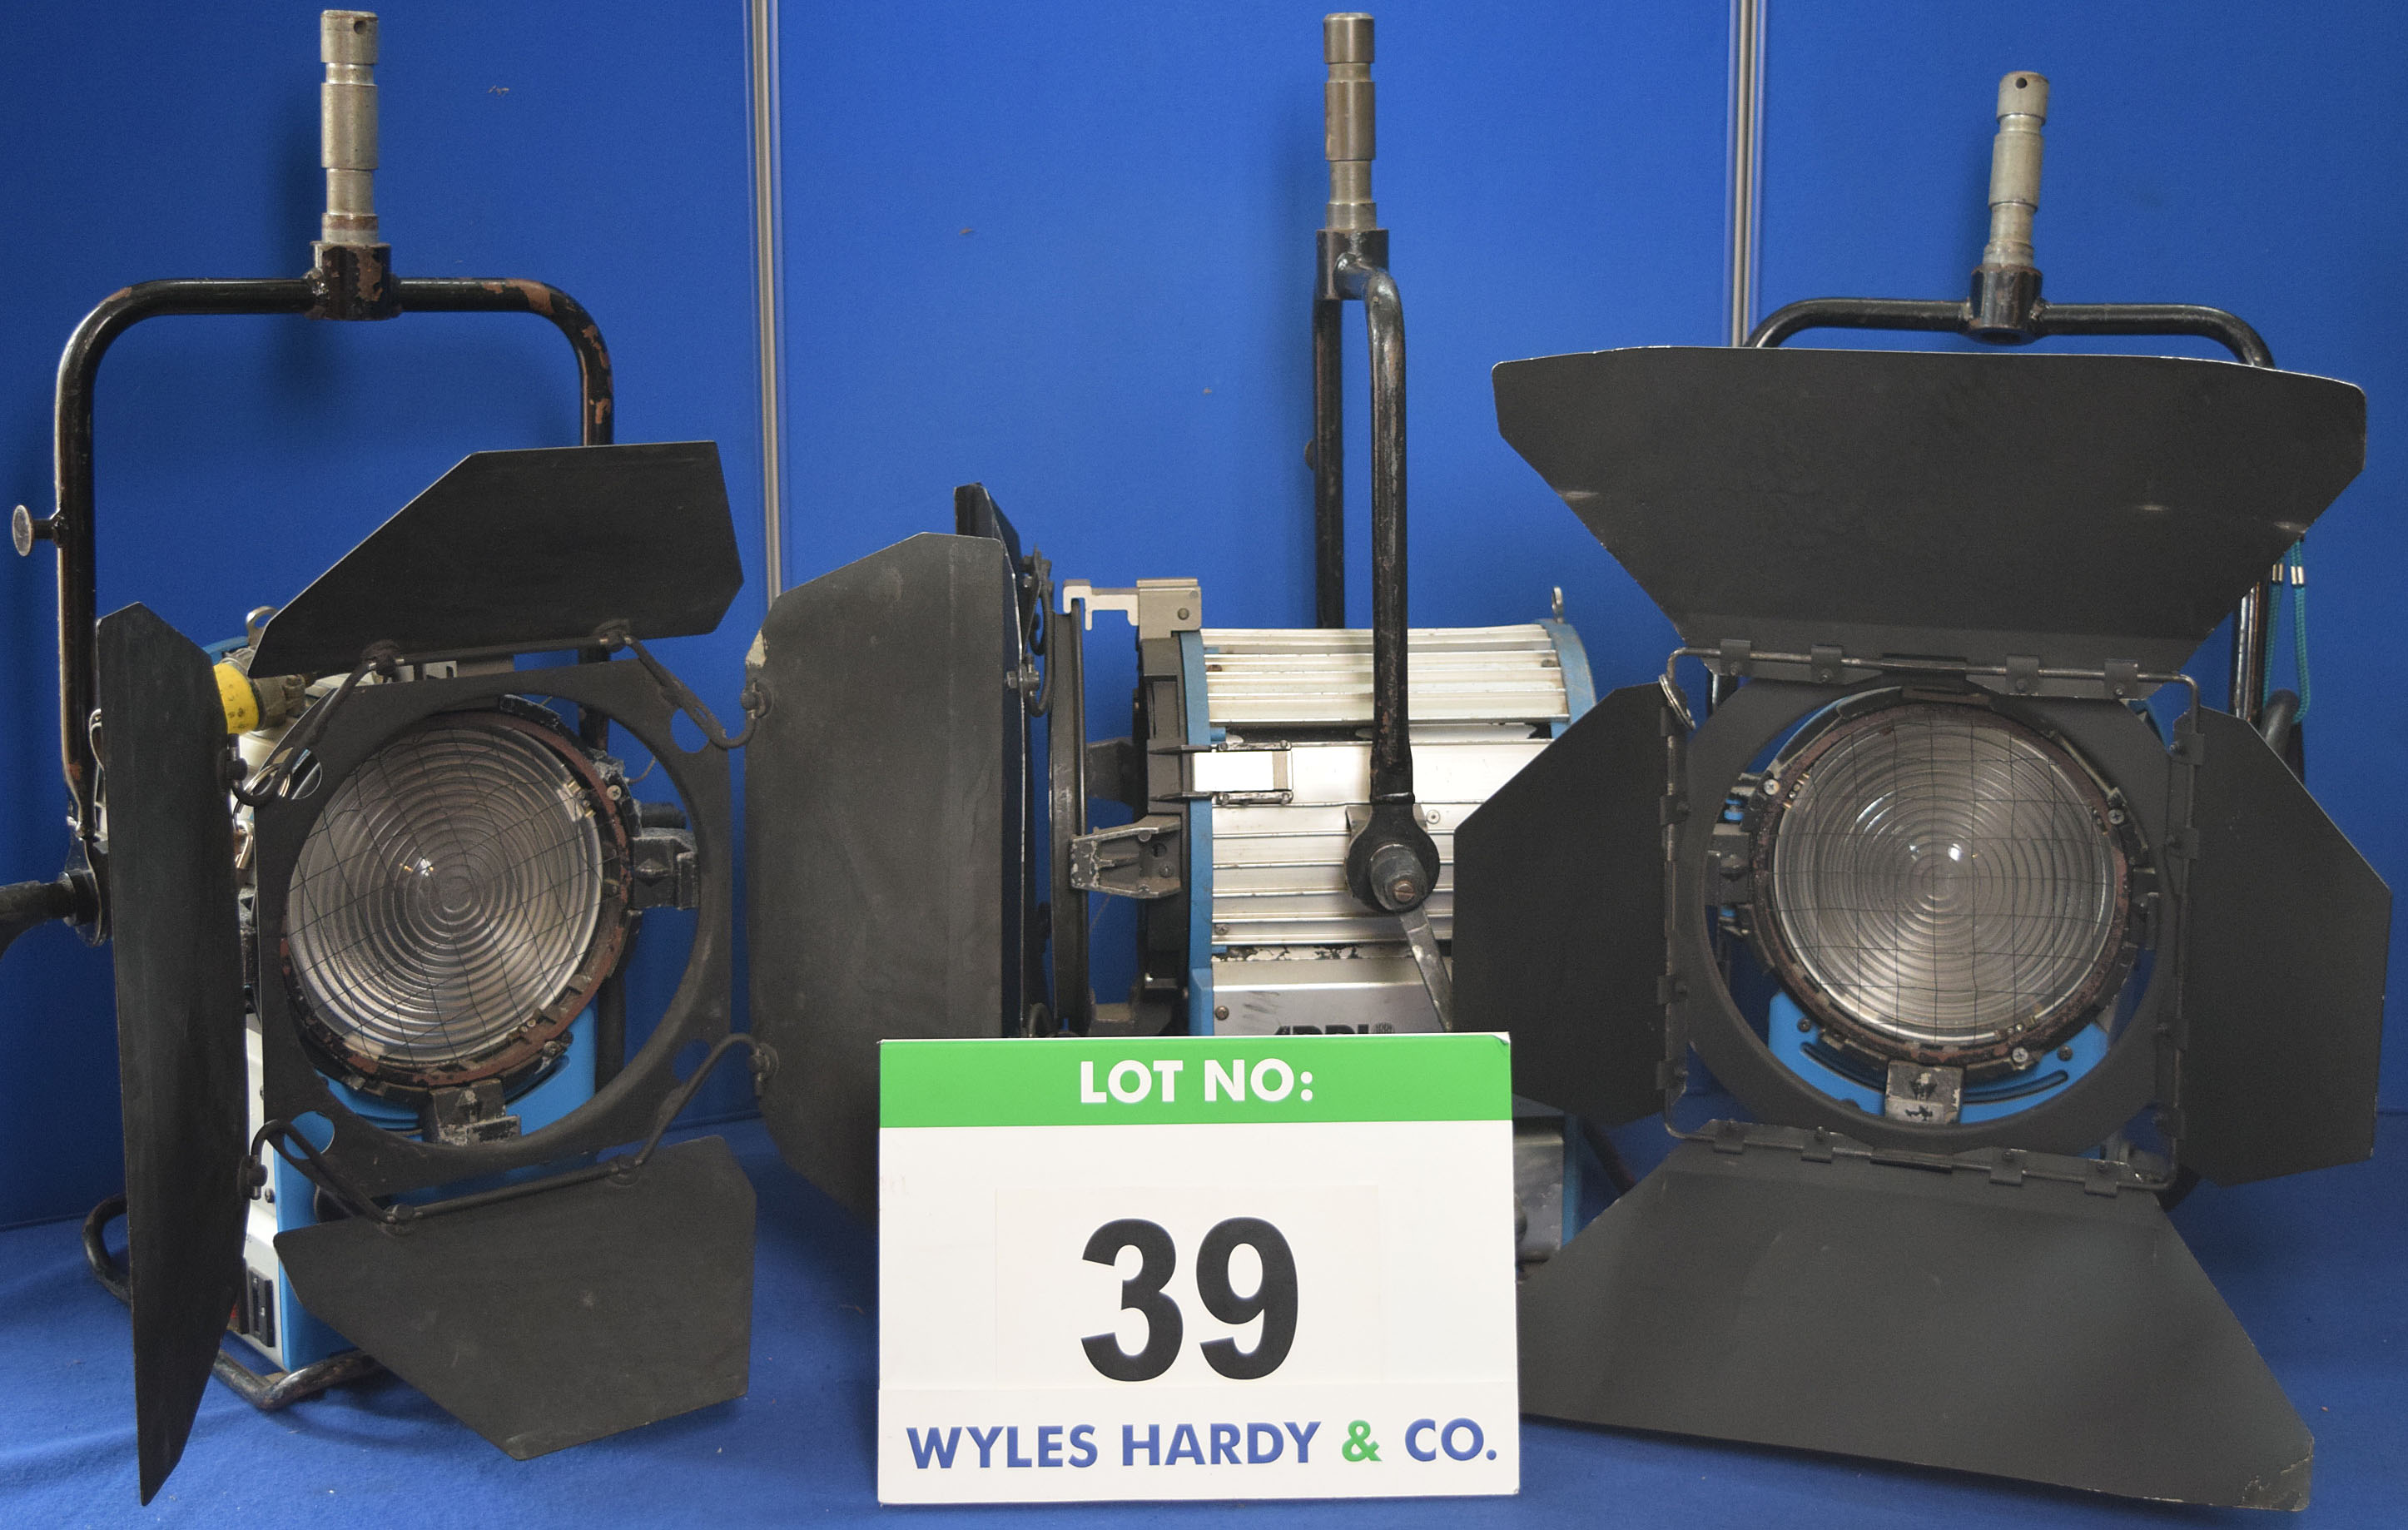 Lot 39 - Three ARRI Daylight Compact 1200 1200W Lights each with fitted Barn Door and Stirrup Mount. Recorded